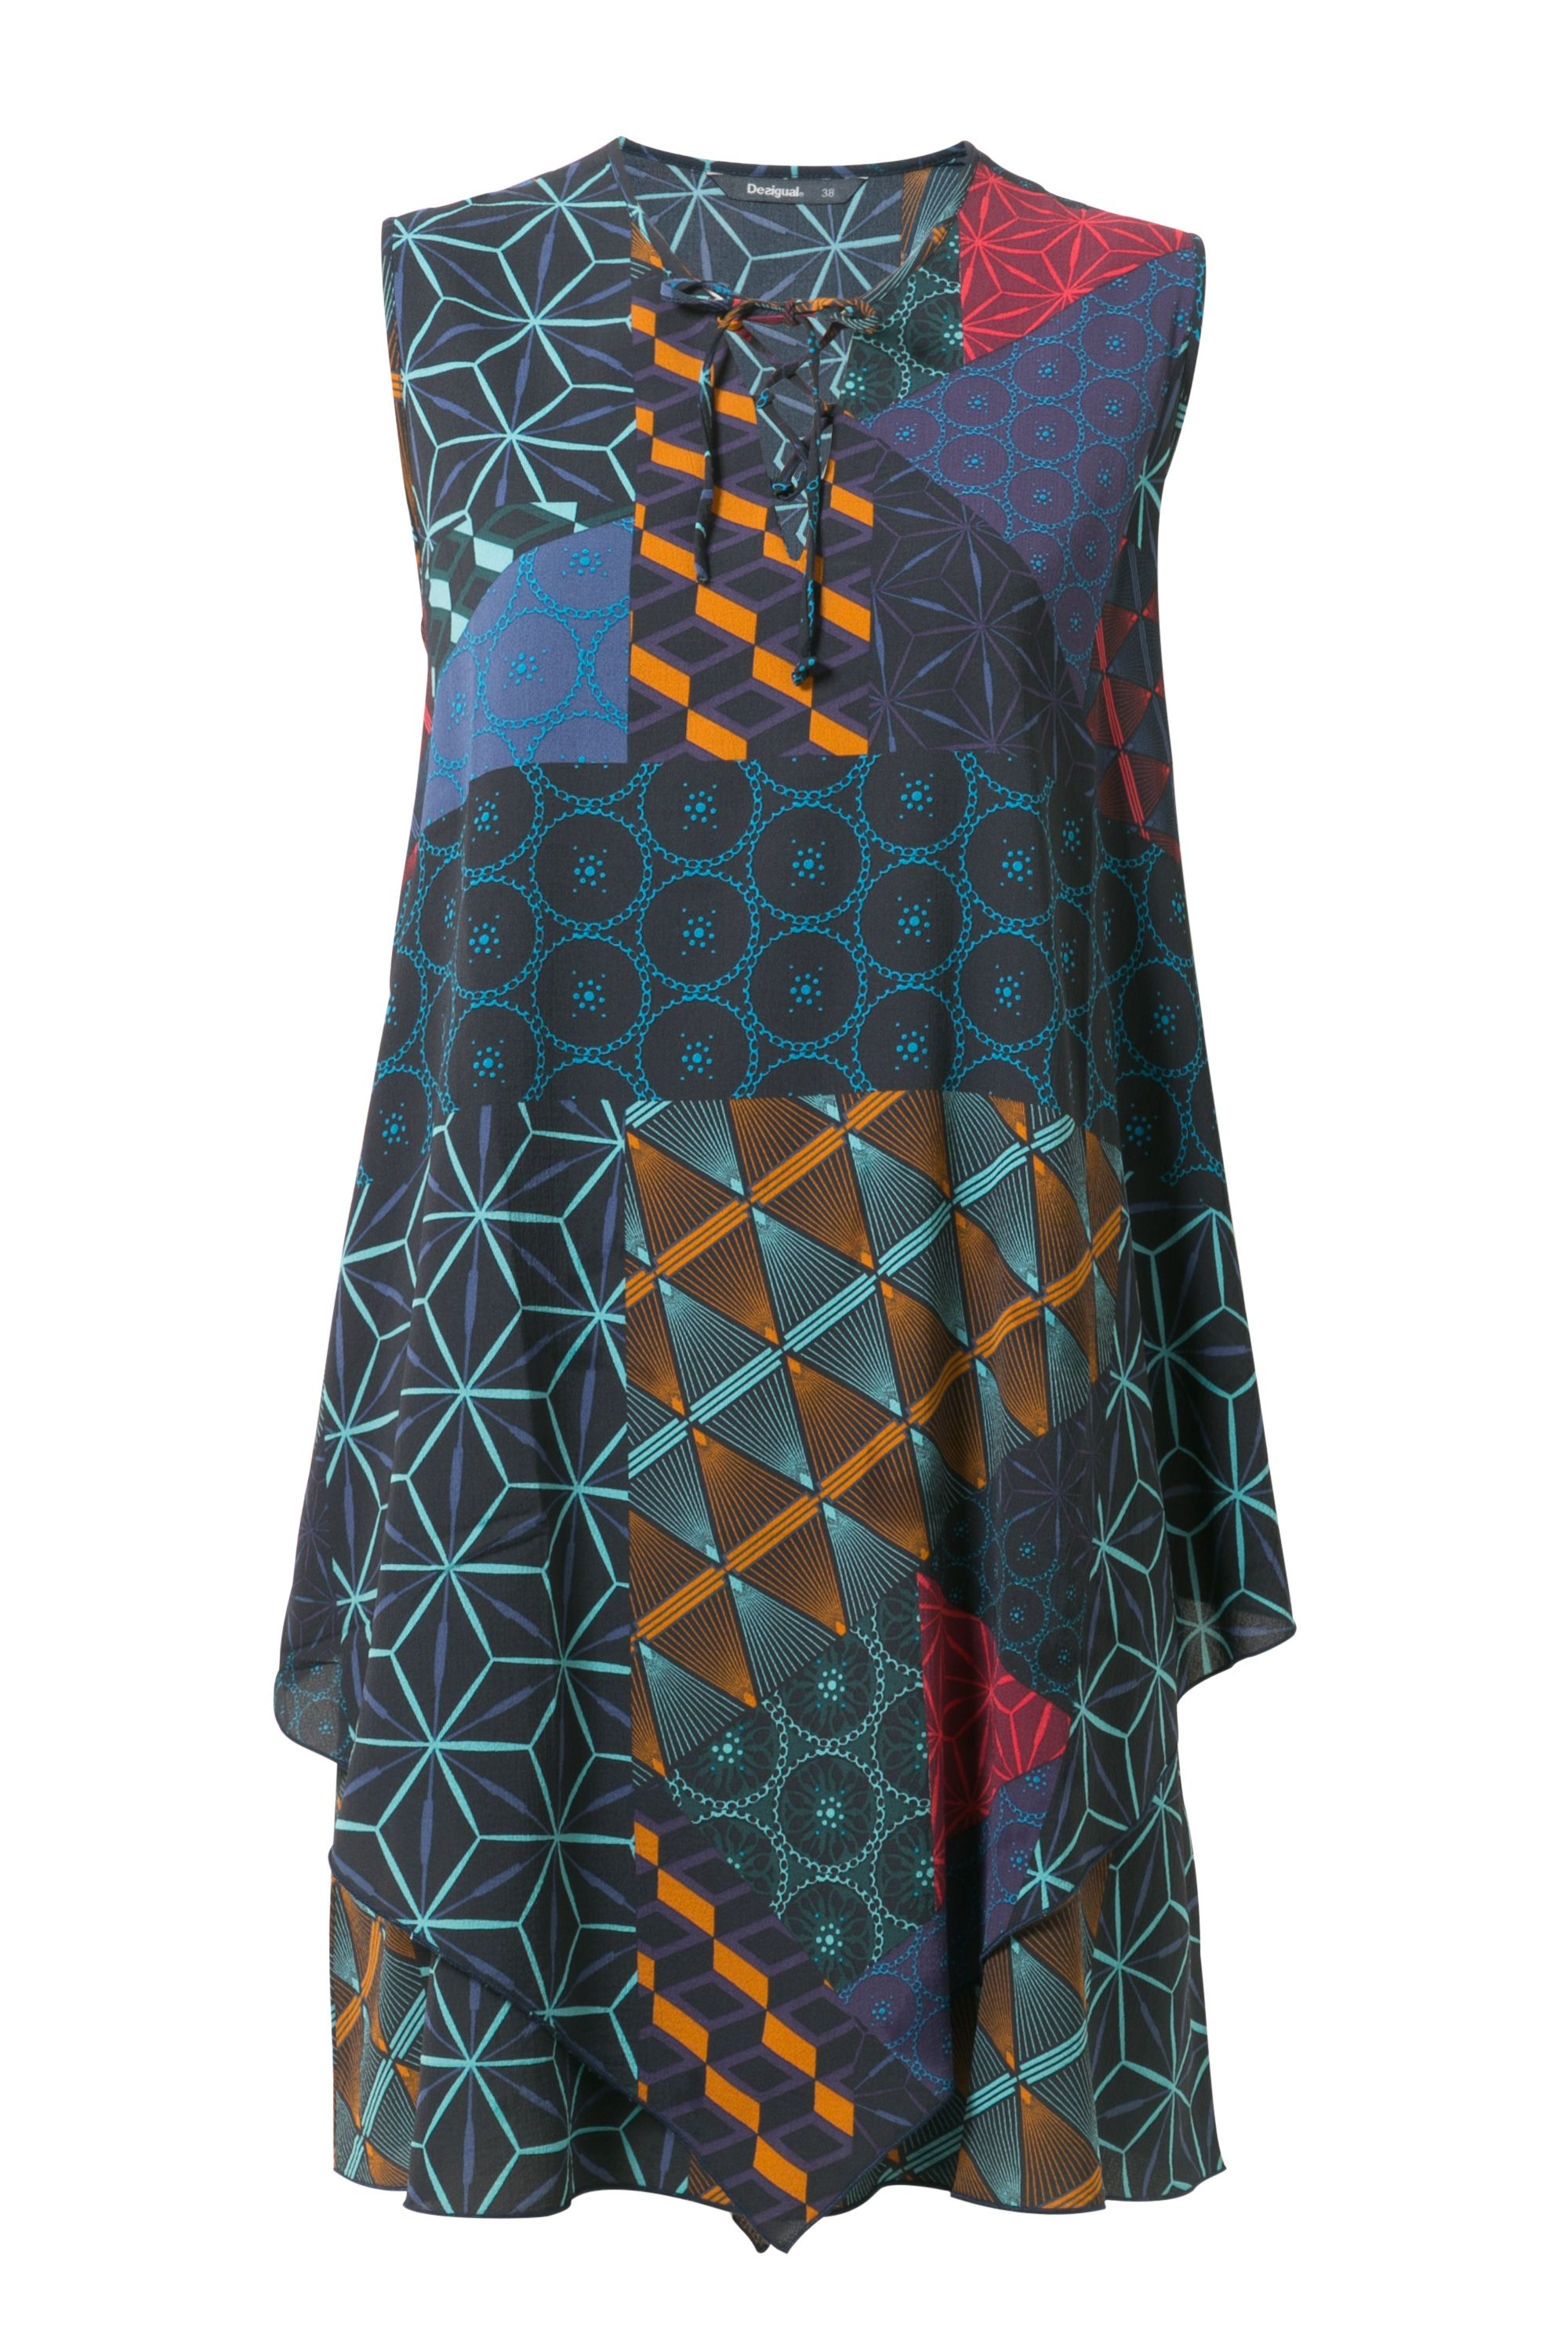 Desigual Casp Dress, Red